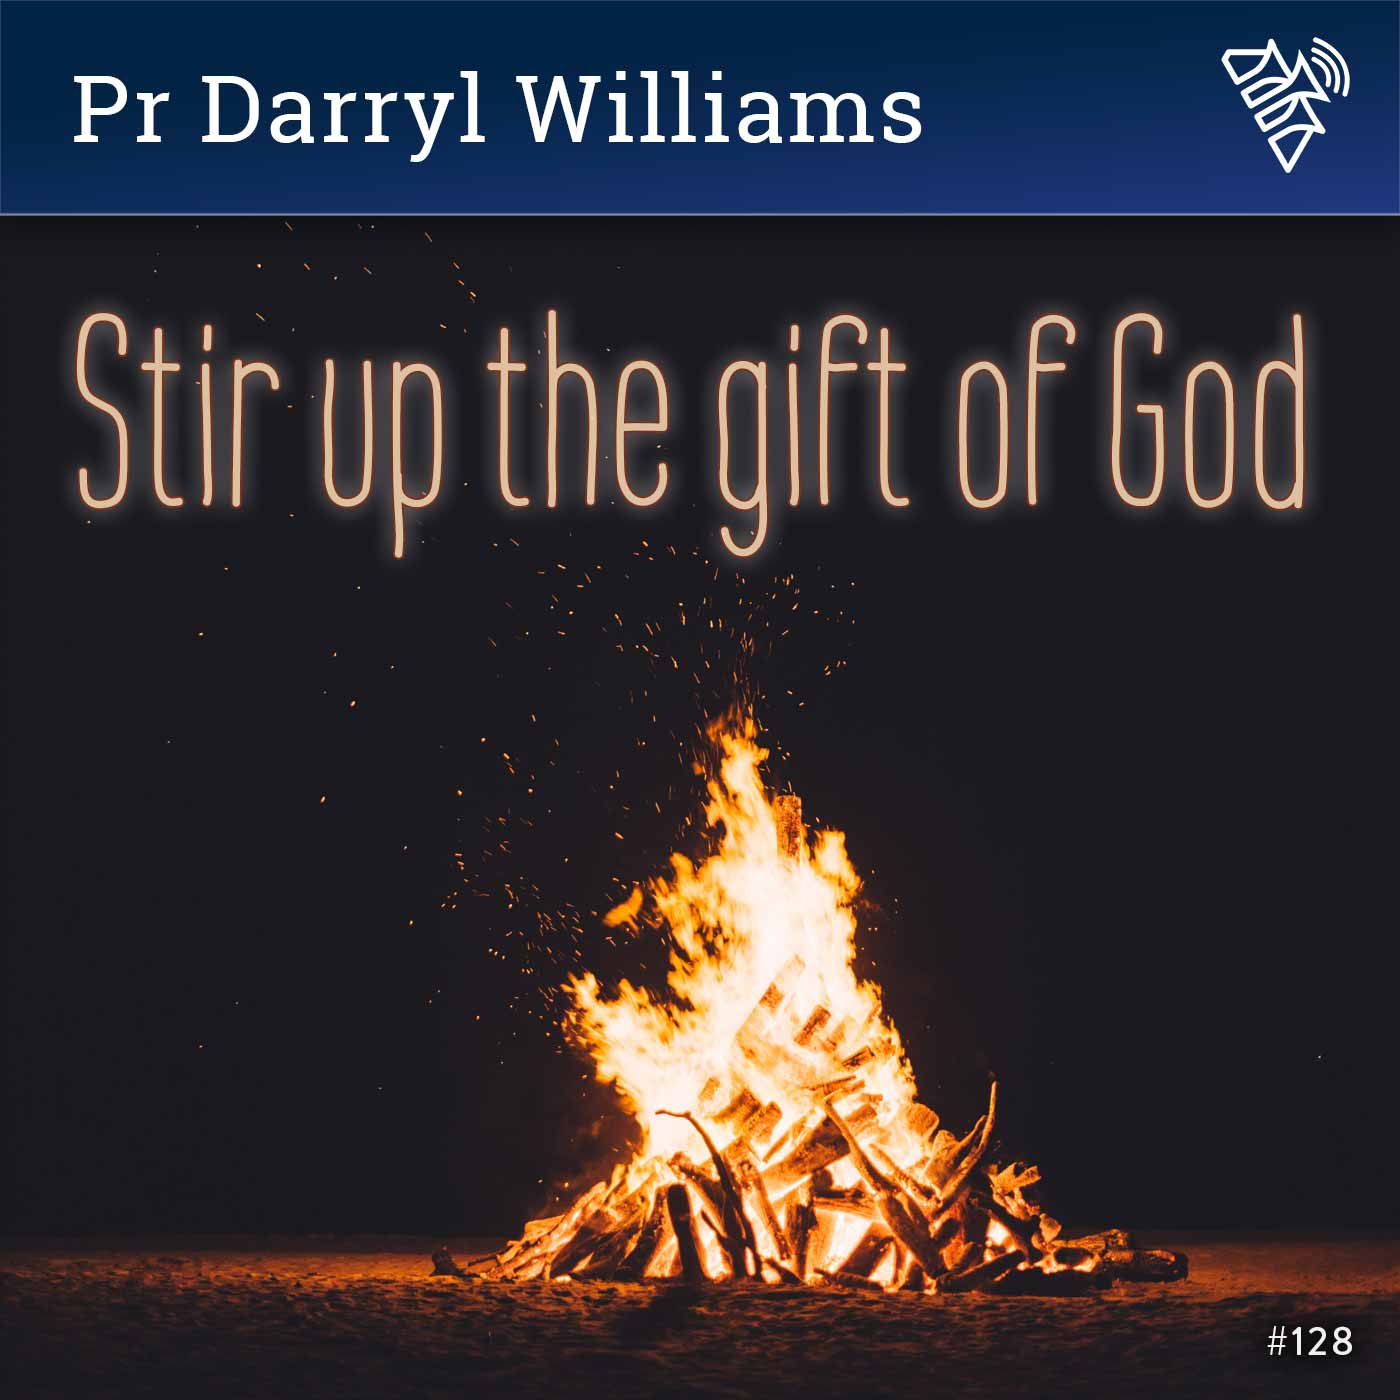 Stir up the gift of God